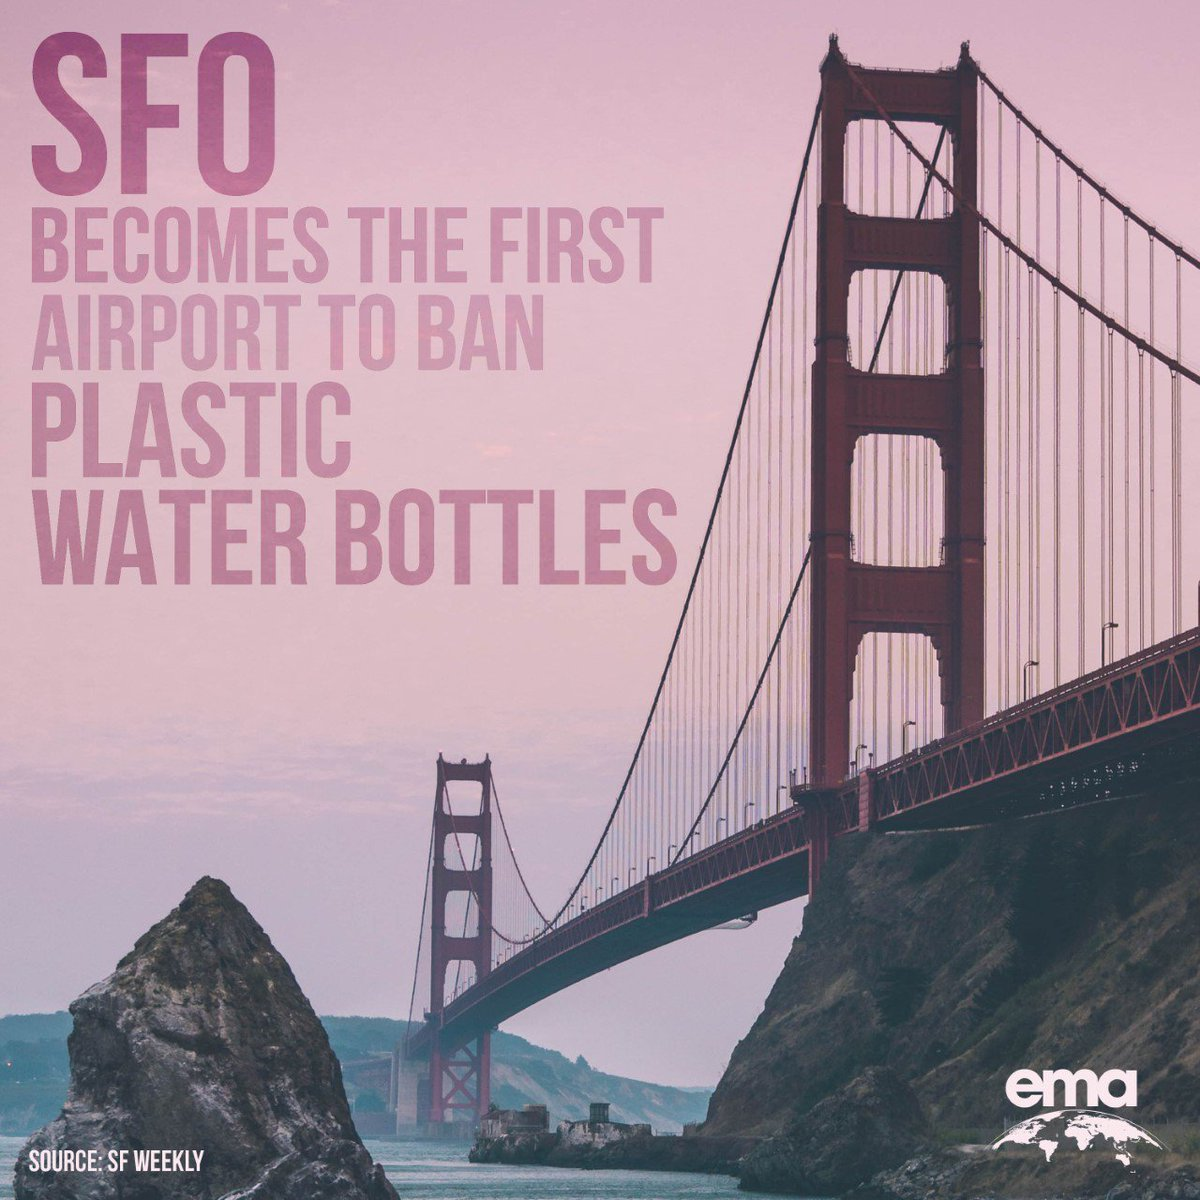 """test Twitter Media - SFO is saying """"goodbye"""" to plastic water bottles! 👋The San Francisco Airport is banning the sale of plastic water bottles after discovering that roughly 10,000 plastic water bottles are bought at the airport every day. We are thrilled by SFO's efforts to reduce waste! https://t.co/4DsUyCgBCN"""